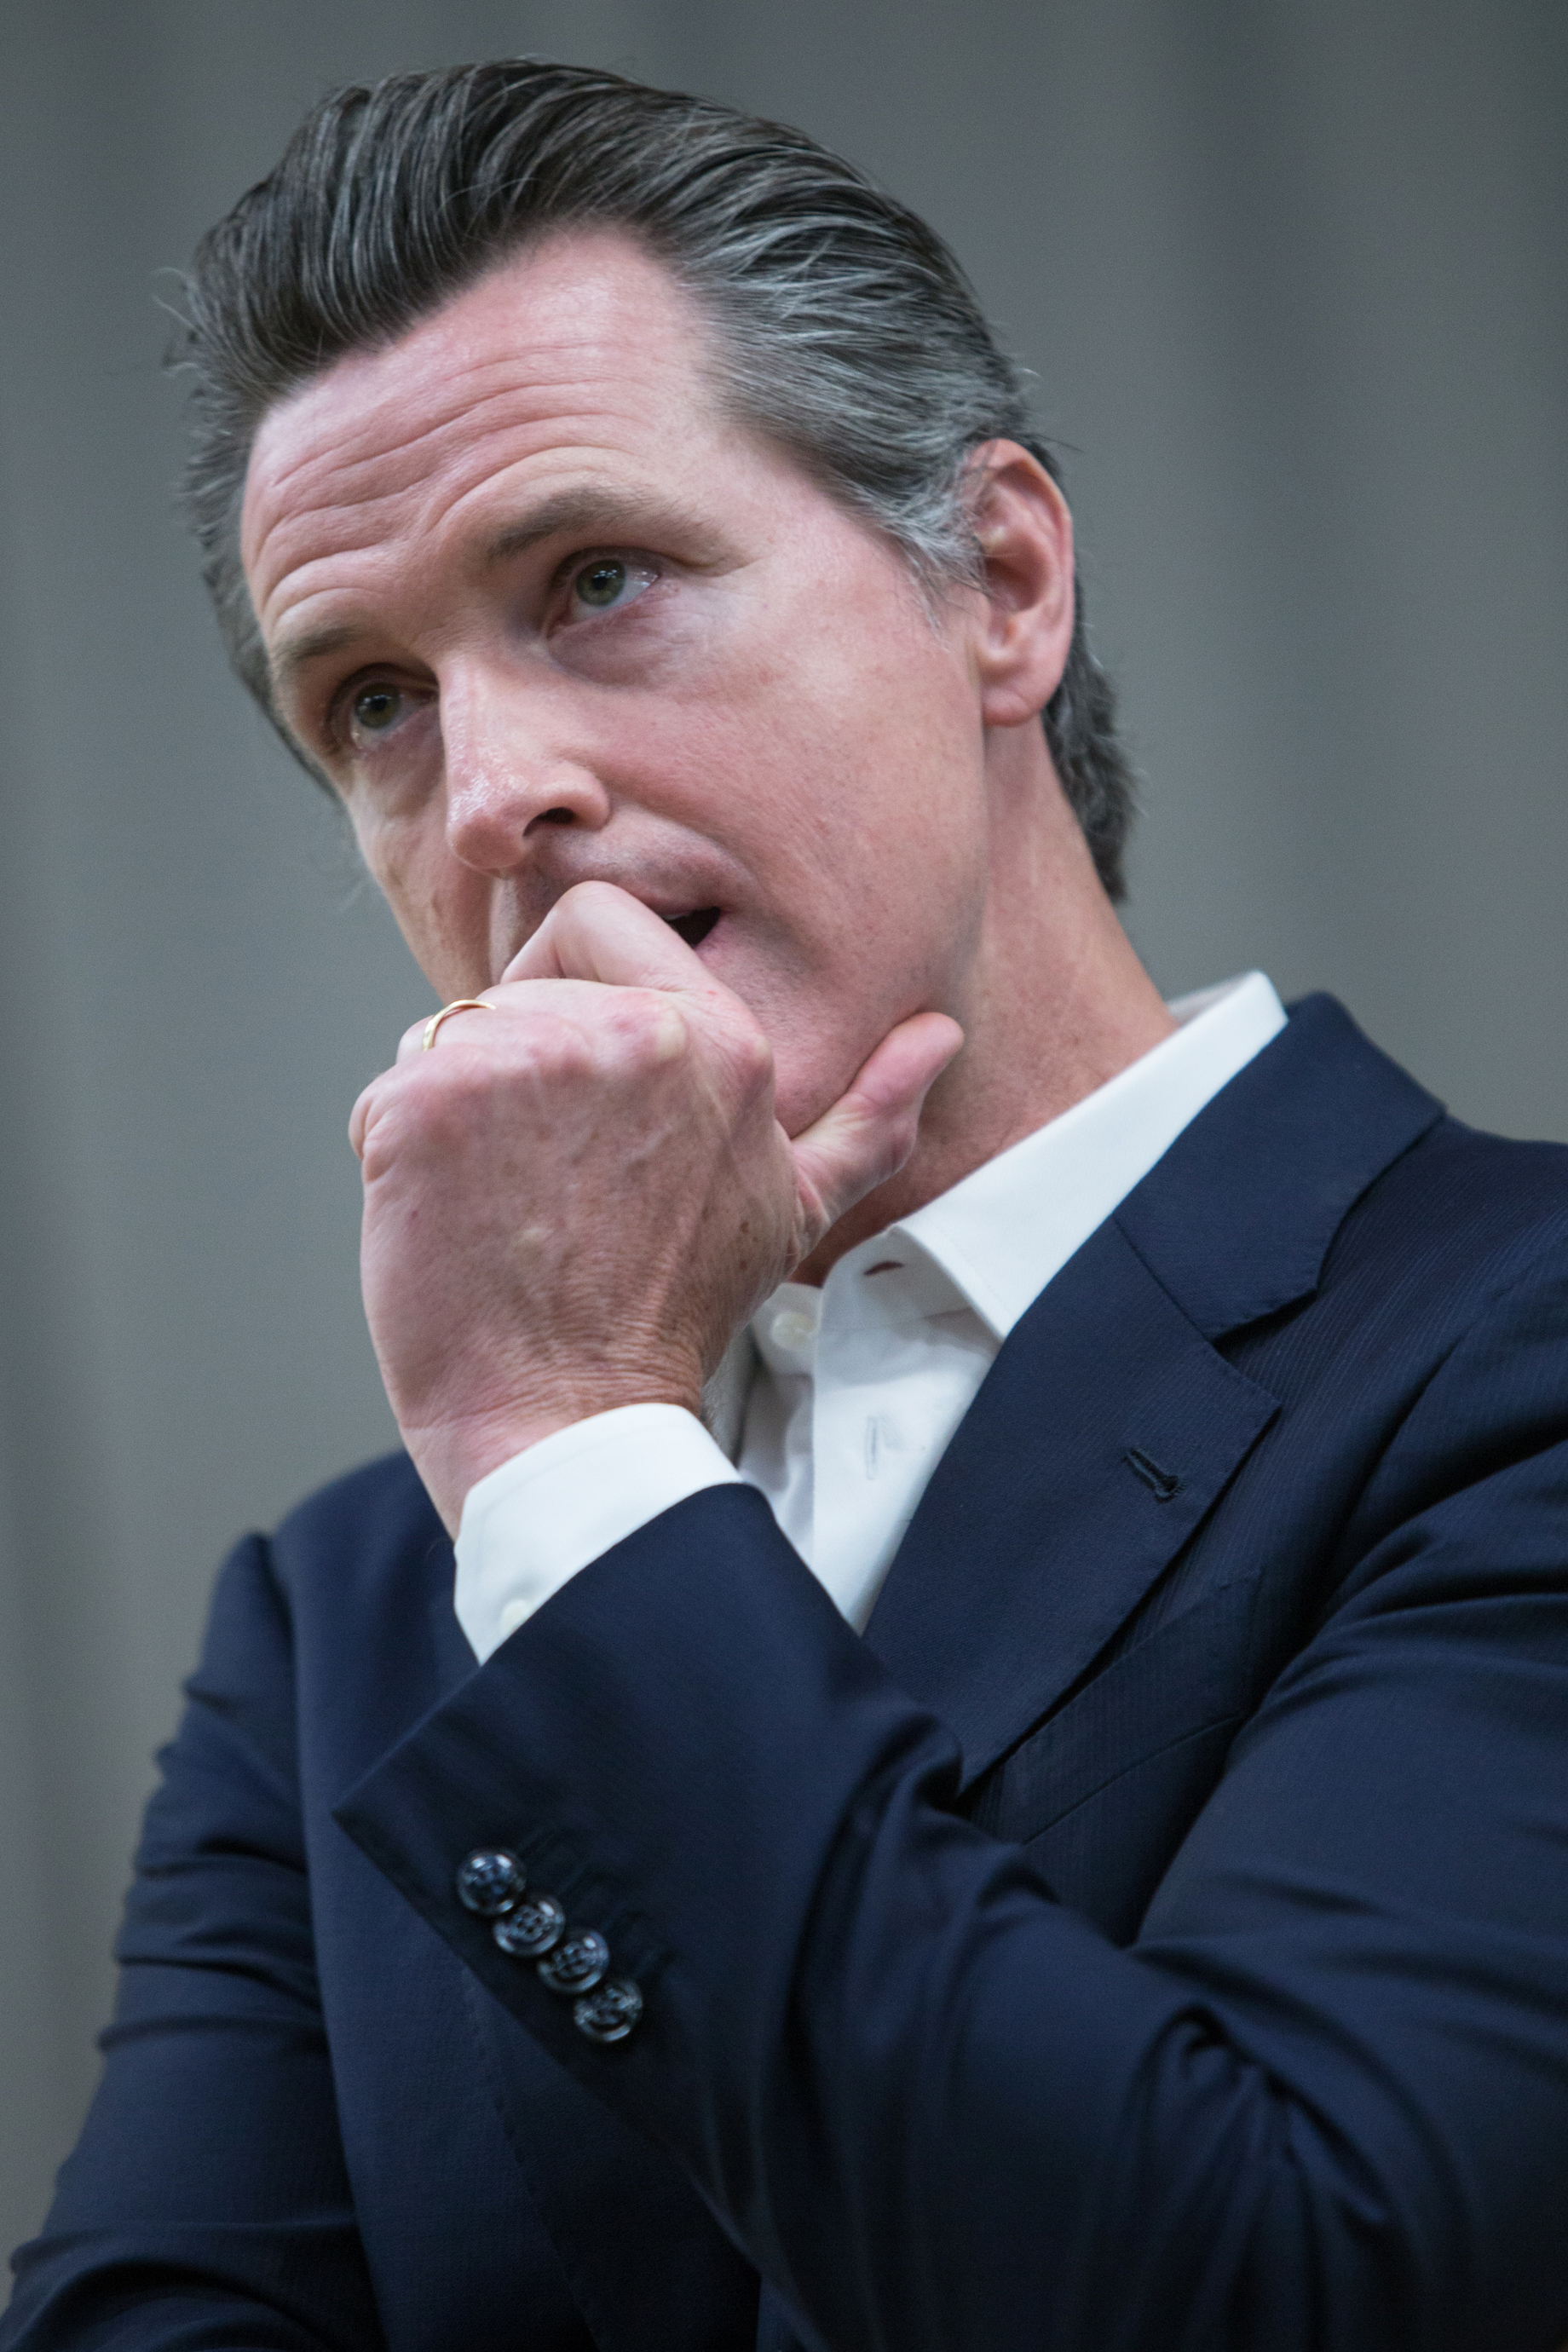 California Governor Gavin Newsom listening to a question from the audience